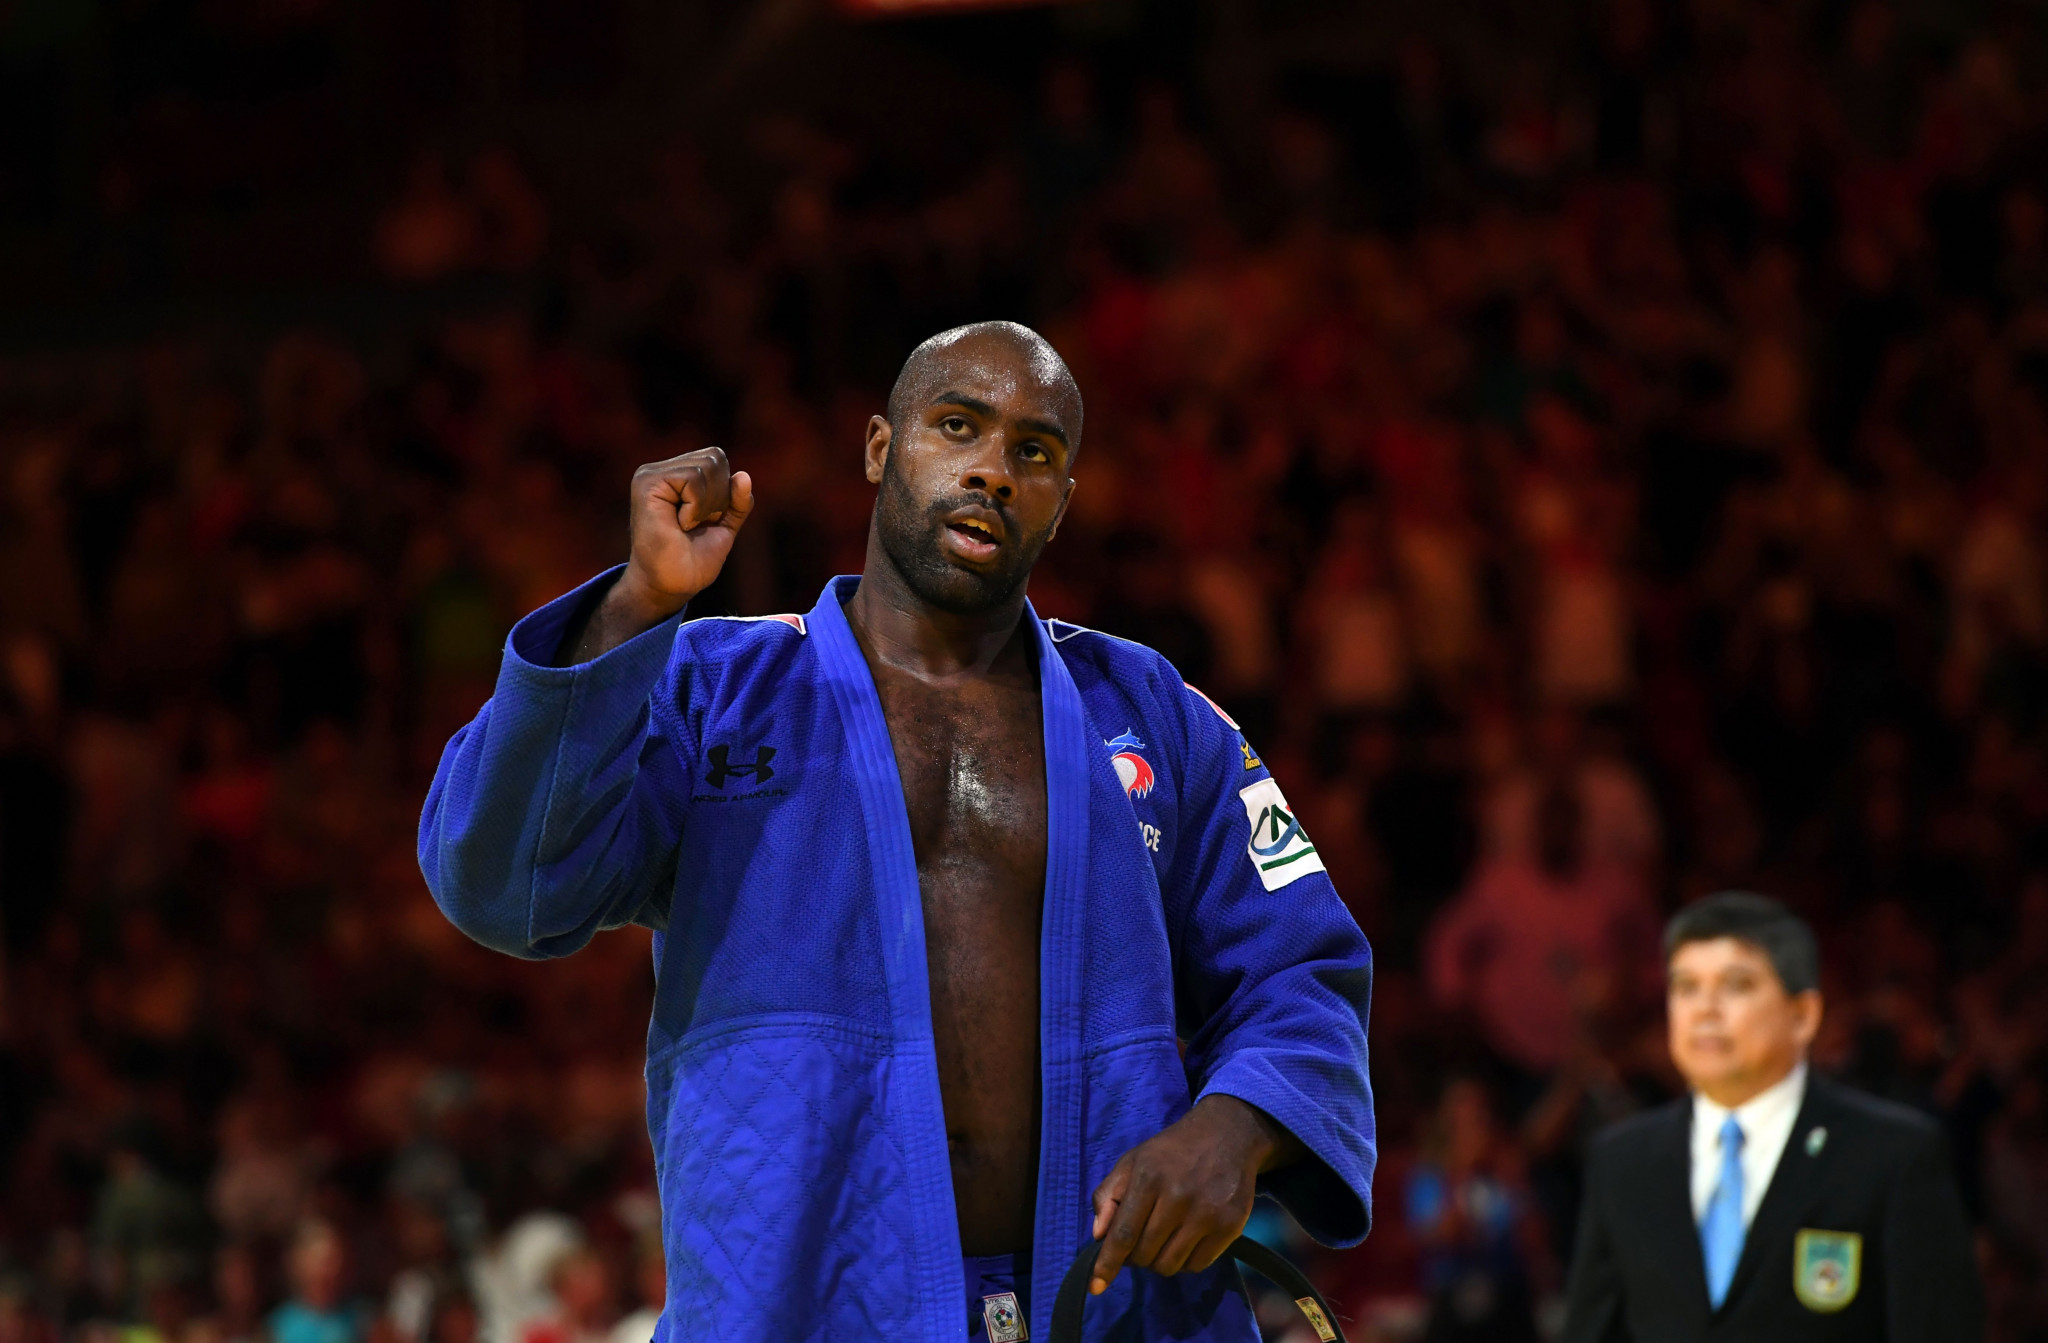 World champion Teddy Riner maintained his winning streak in Zagreb ©Getty Images